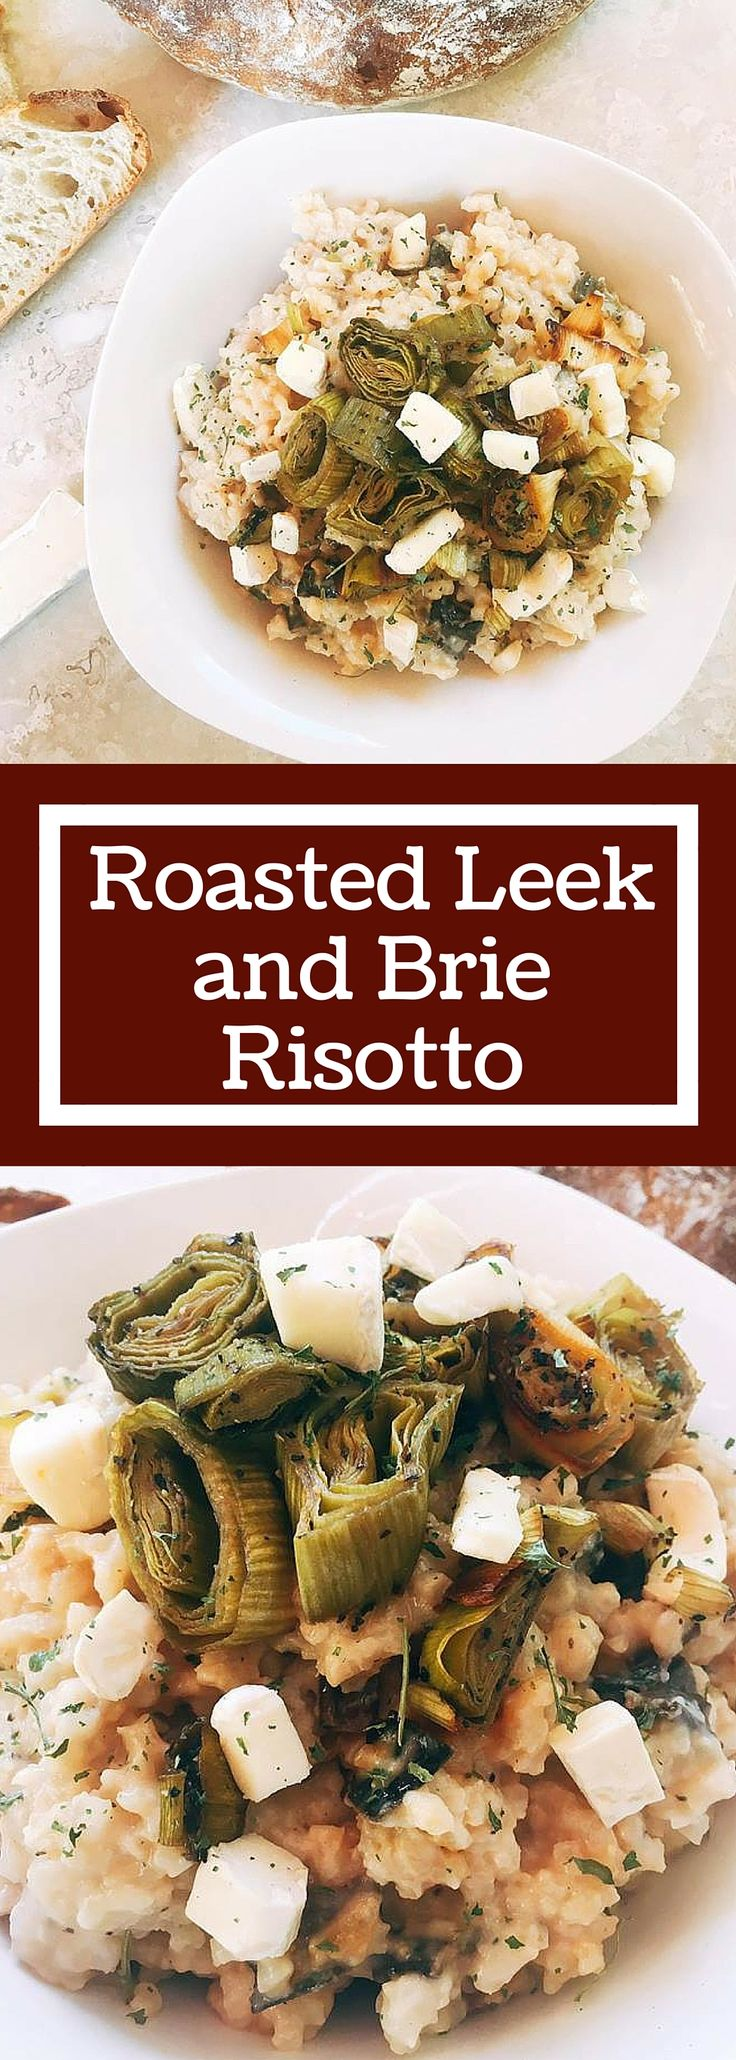 A unique and fun dish! Brie melts into the risotto to make one of the creamiest and most luxurious risottos. Roasted leeks add depth of flavor for a unique and delicious risotto.  Vegetarian but would also be great with some roasted chicken! | Roasted Leek and Brie Risotto | www.threeolivesbranch.com